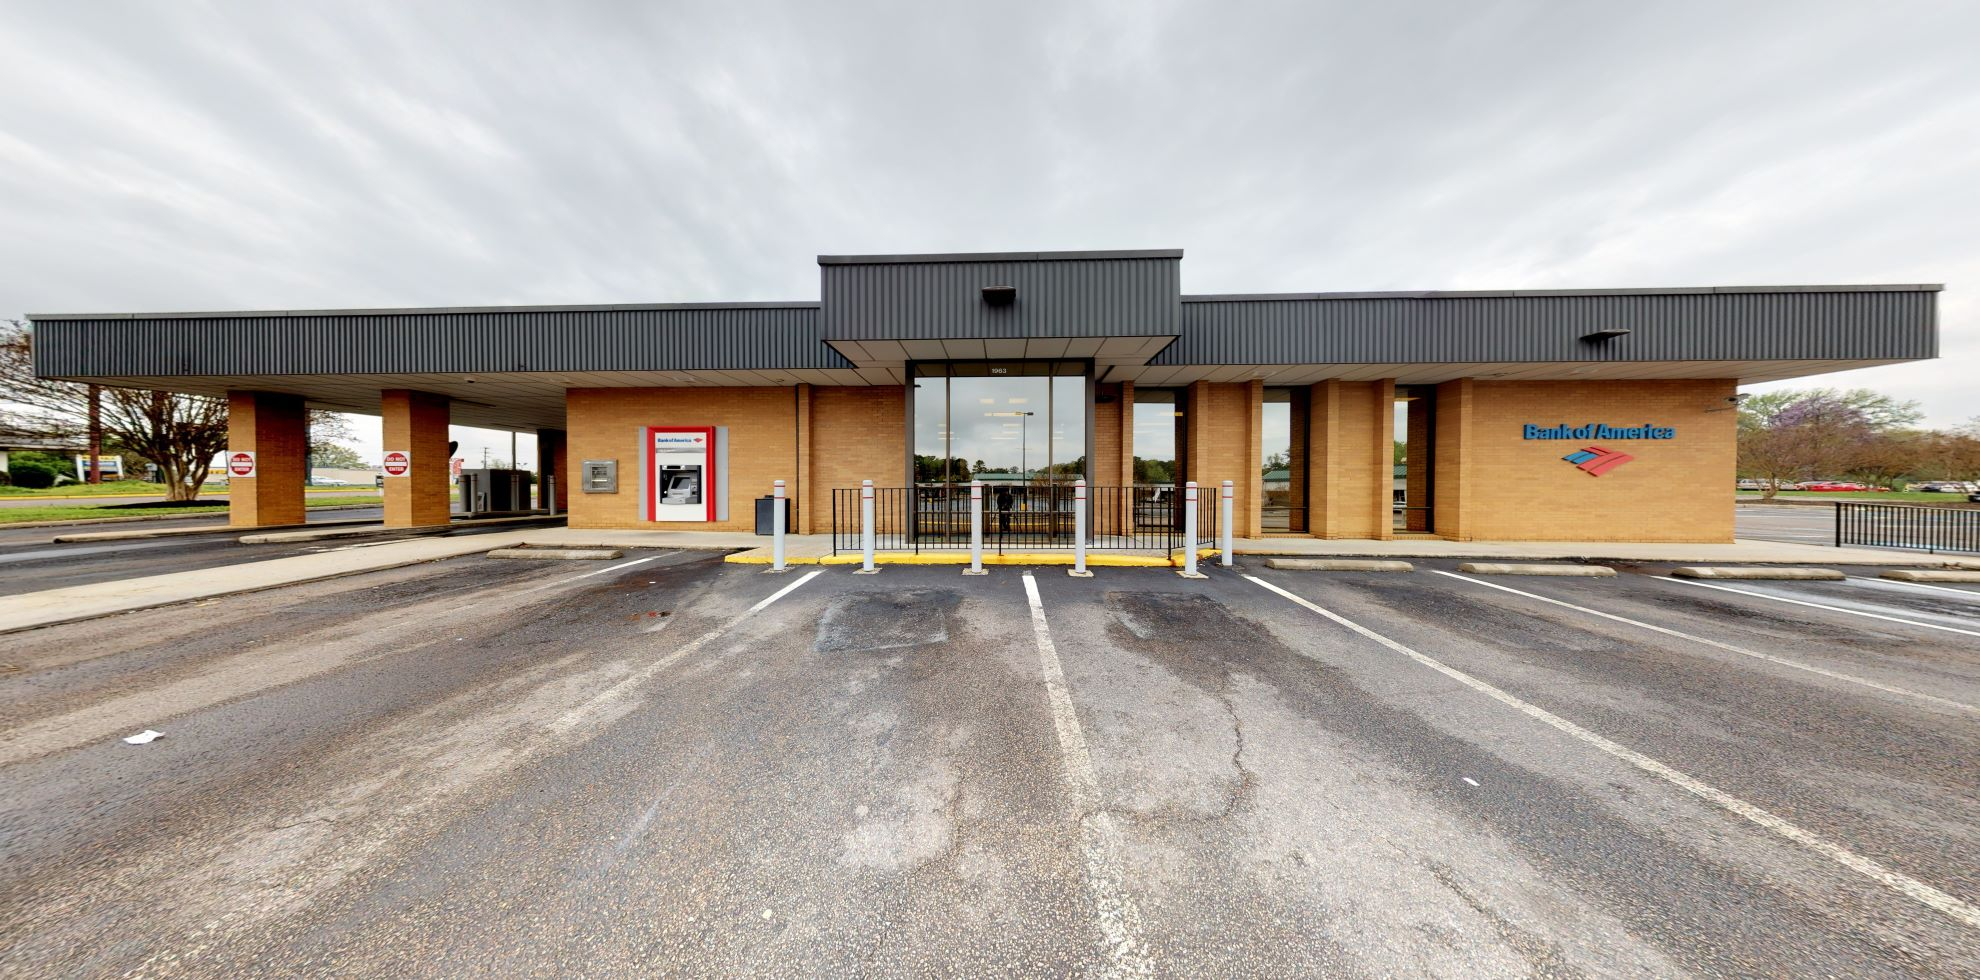 Bank of America financial center with drive-thru ATM   1963 S Crater Rd, Petersburg, VA 23805